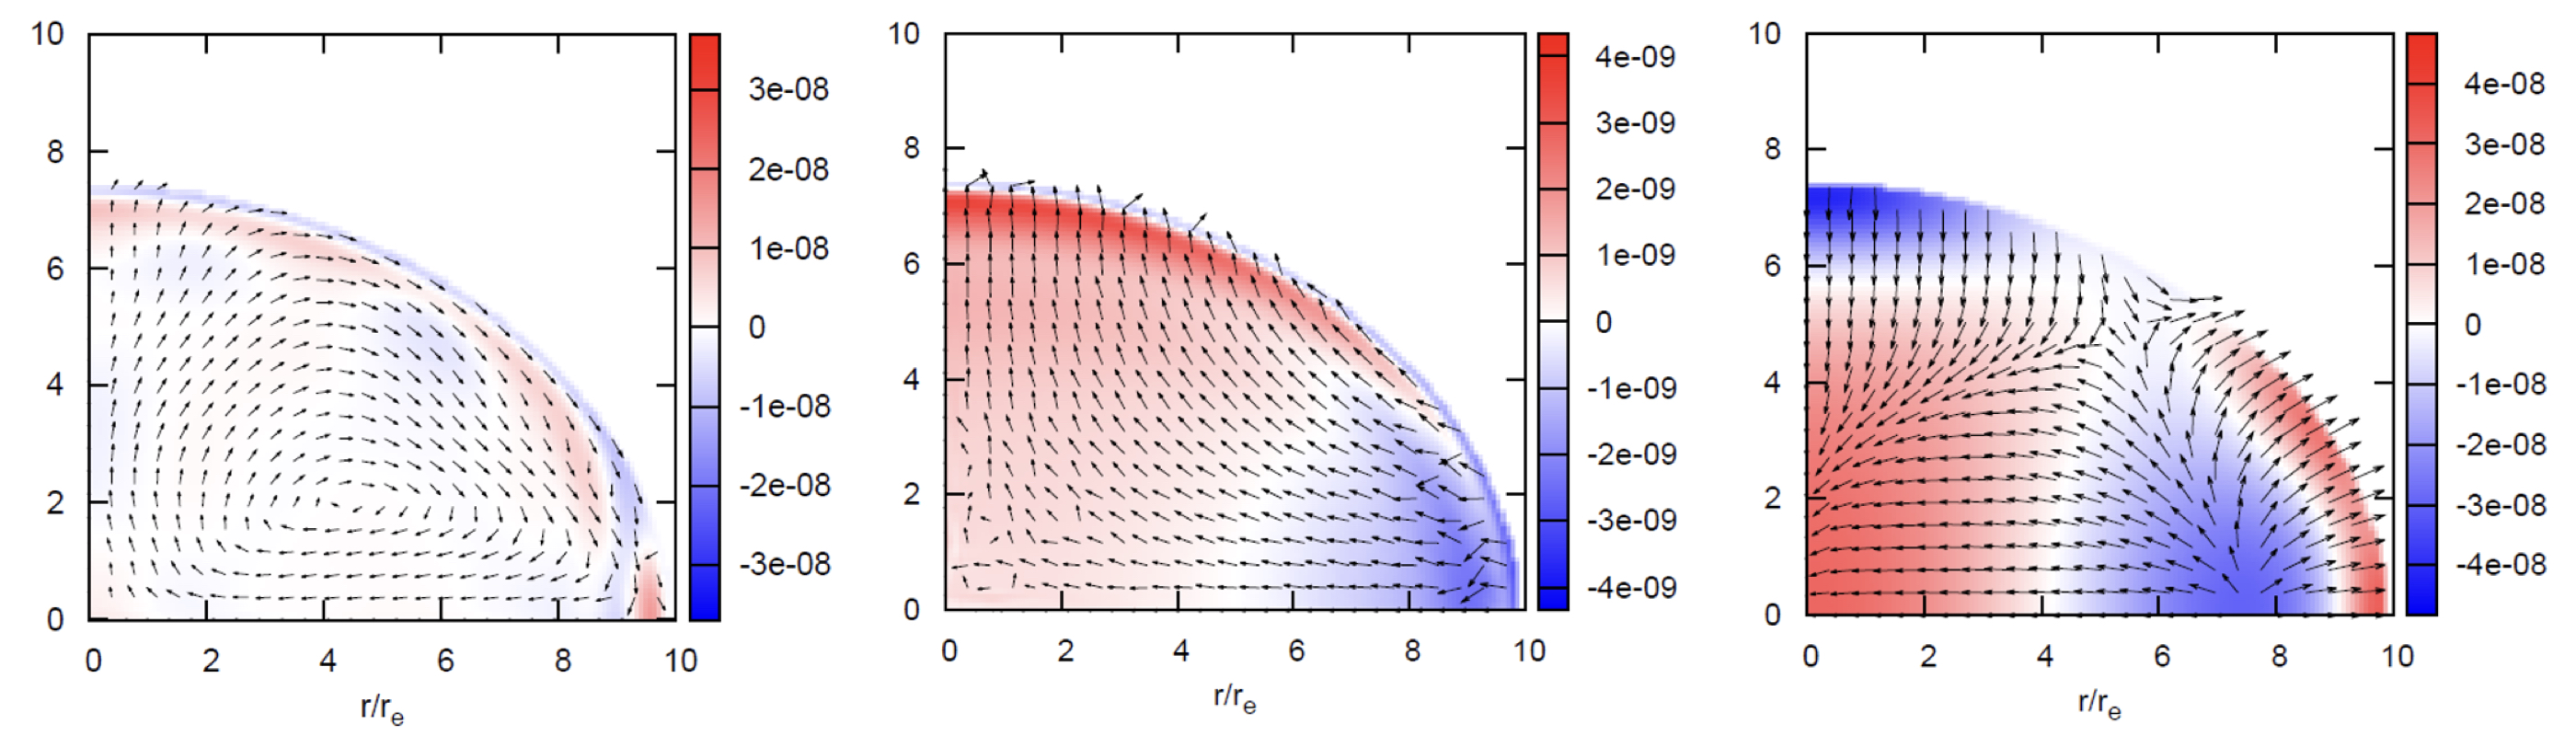 Fig. 6. Eigenfunctions of several non-radial modes. Density and velocity fluctuation are shown in colors and arrows, respectively. Each figure represents left: inertial mode (i), middle: non-radial fundamental mode with l=2 (2f), and right: pressure mode with l=2 and n=1 (2p1), where superscript l and subscript n are a degree of spherical harmonics and the interior number of nodes, respectively. The mode recycling method is used to extract one specific mode.